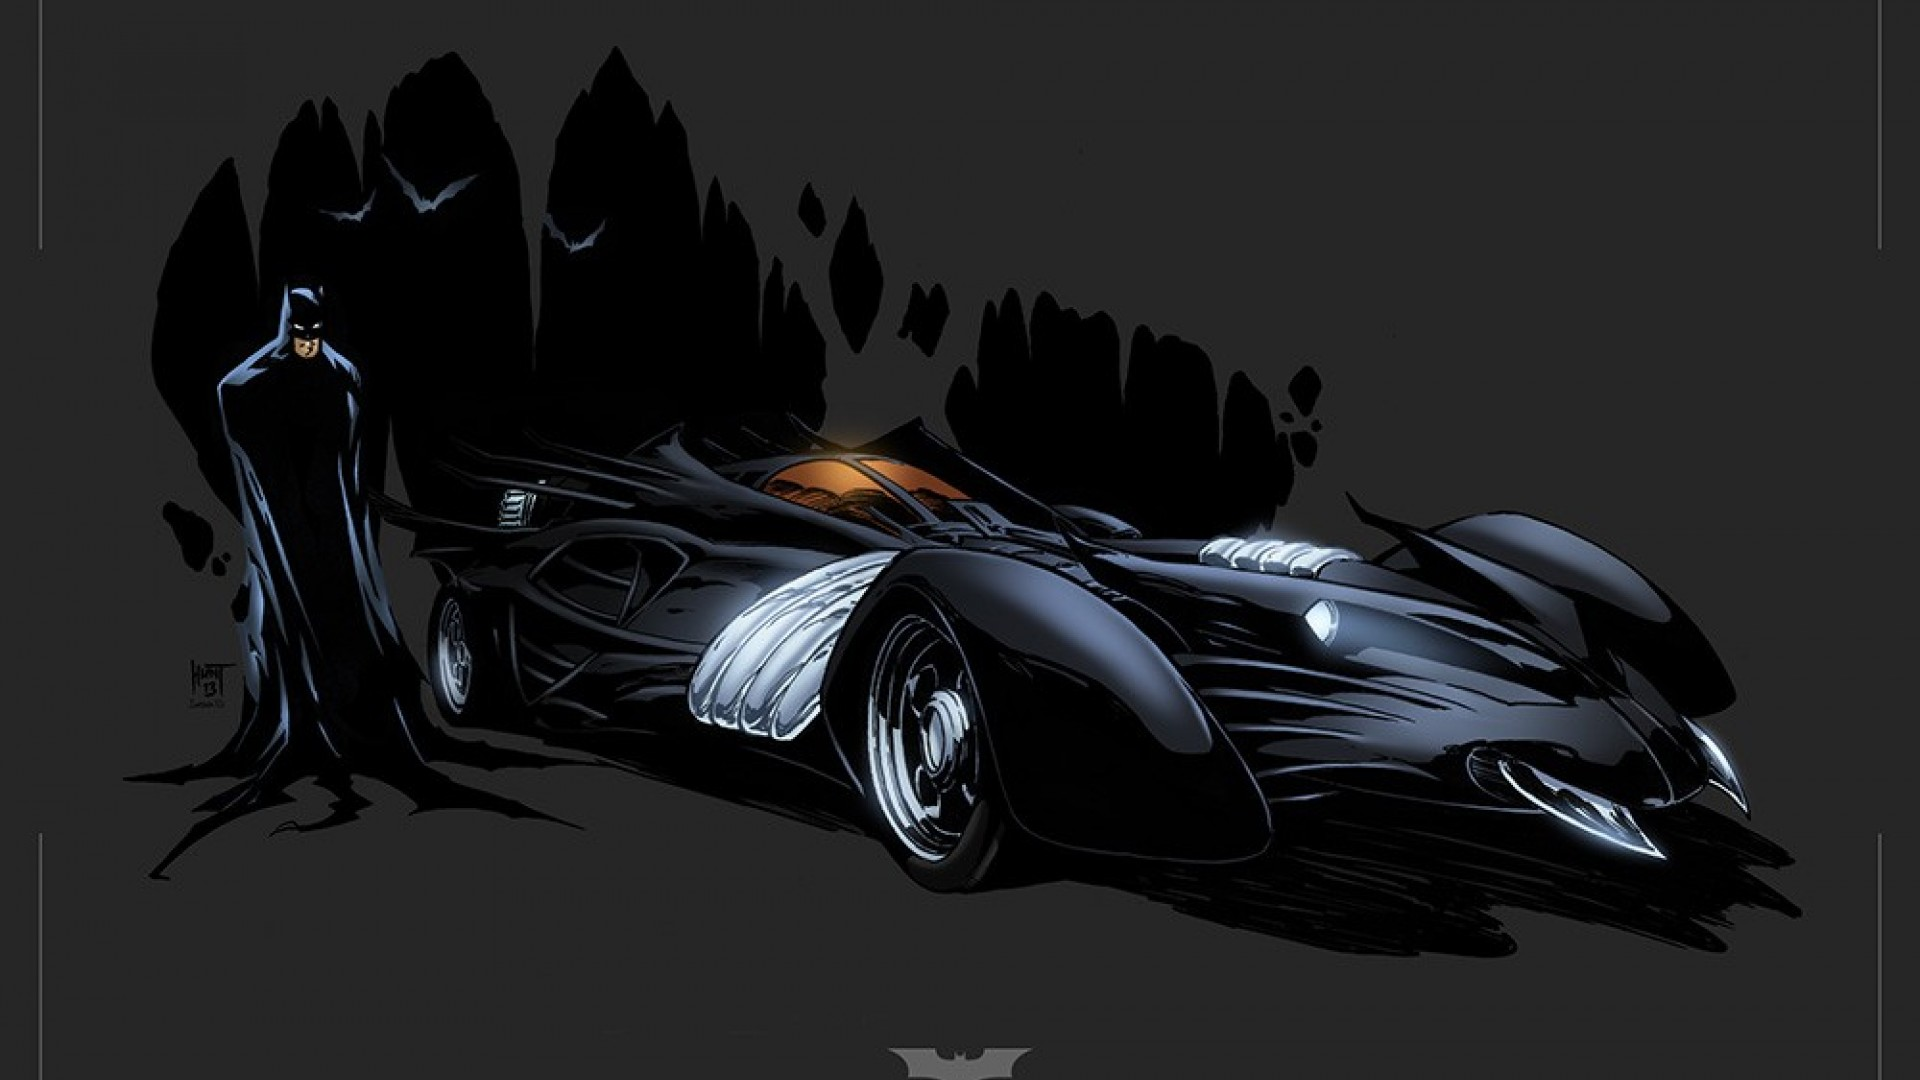 Tim Burton Batmobile Wallpaper Quality Images iPhoto Pick 1920x1080